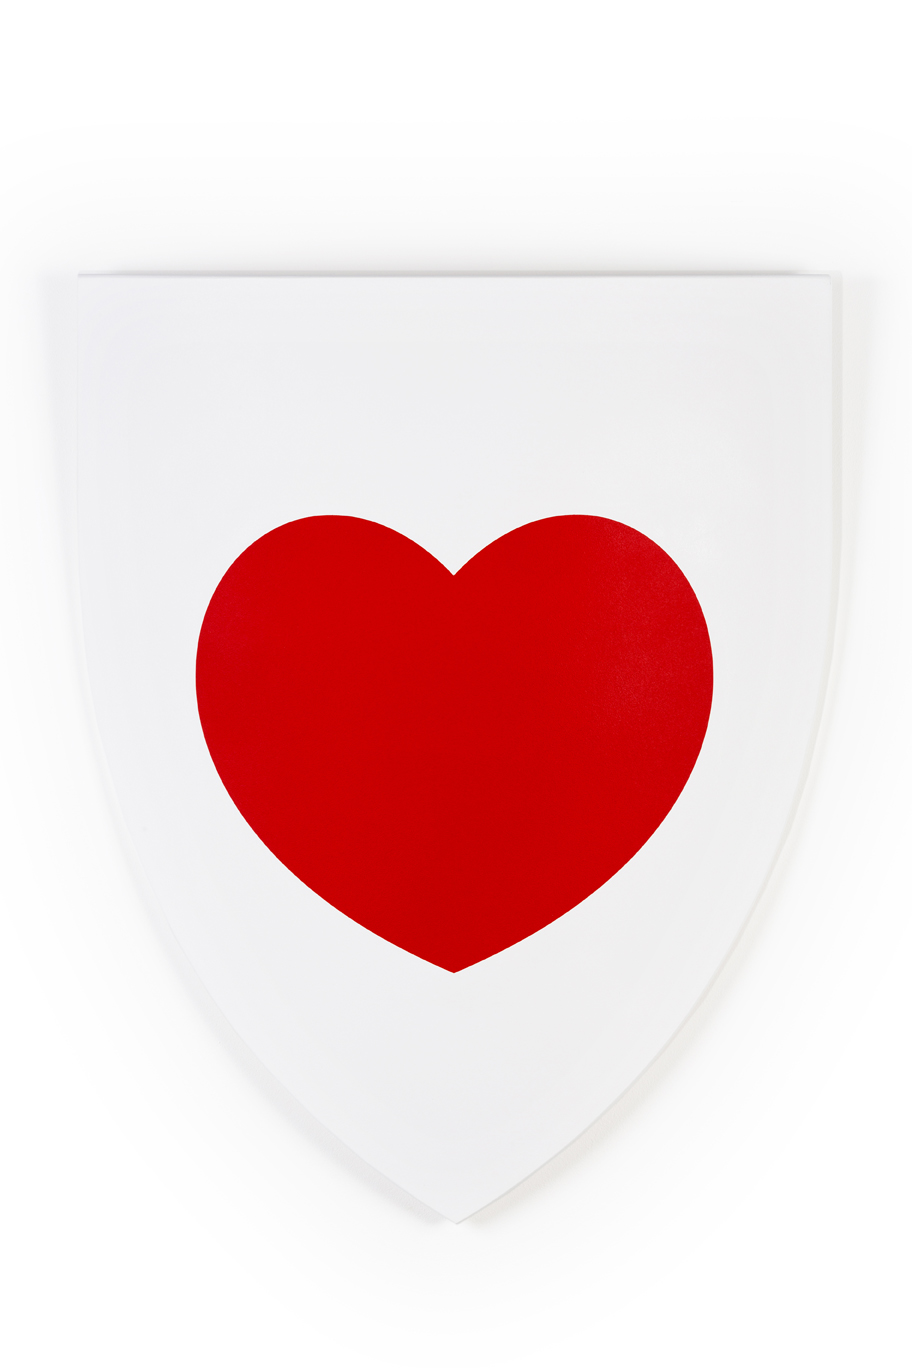 Luke Newton, Heart Shield, 2014, 62x53 - cm - Courtesy the artist and Rabouan Moussion Gallery Paris